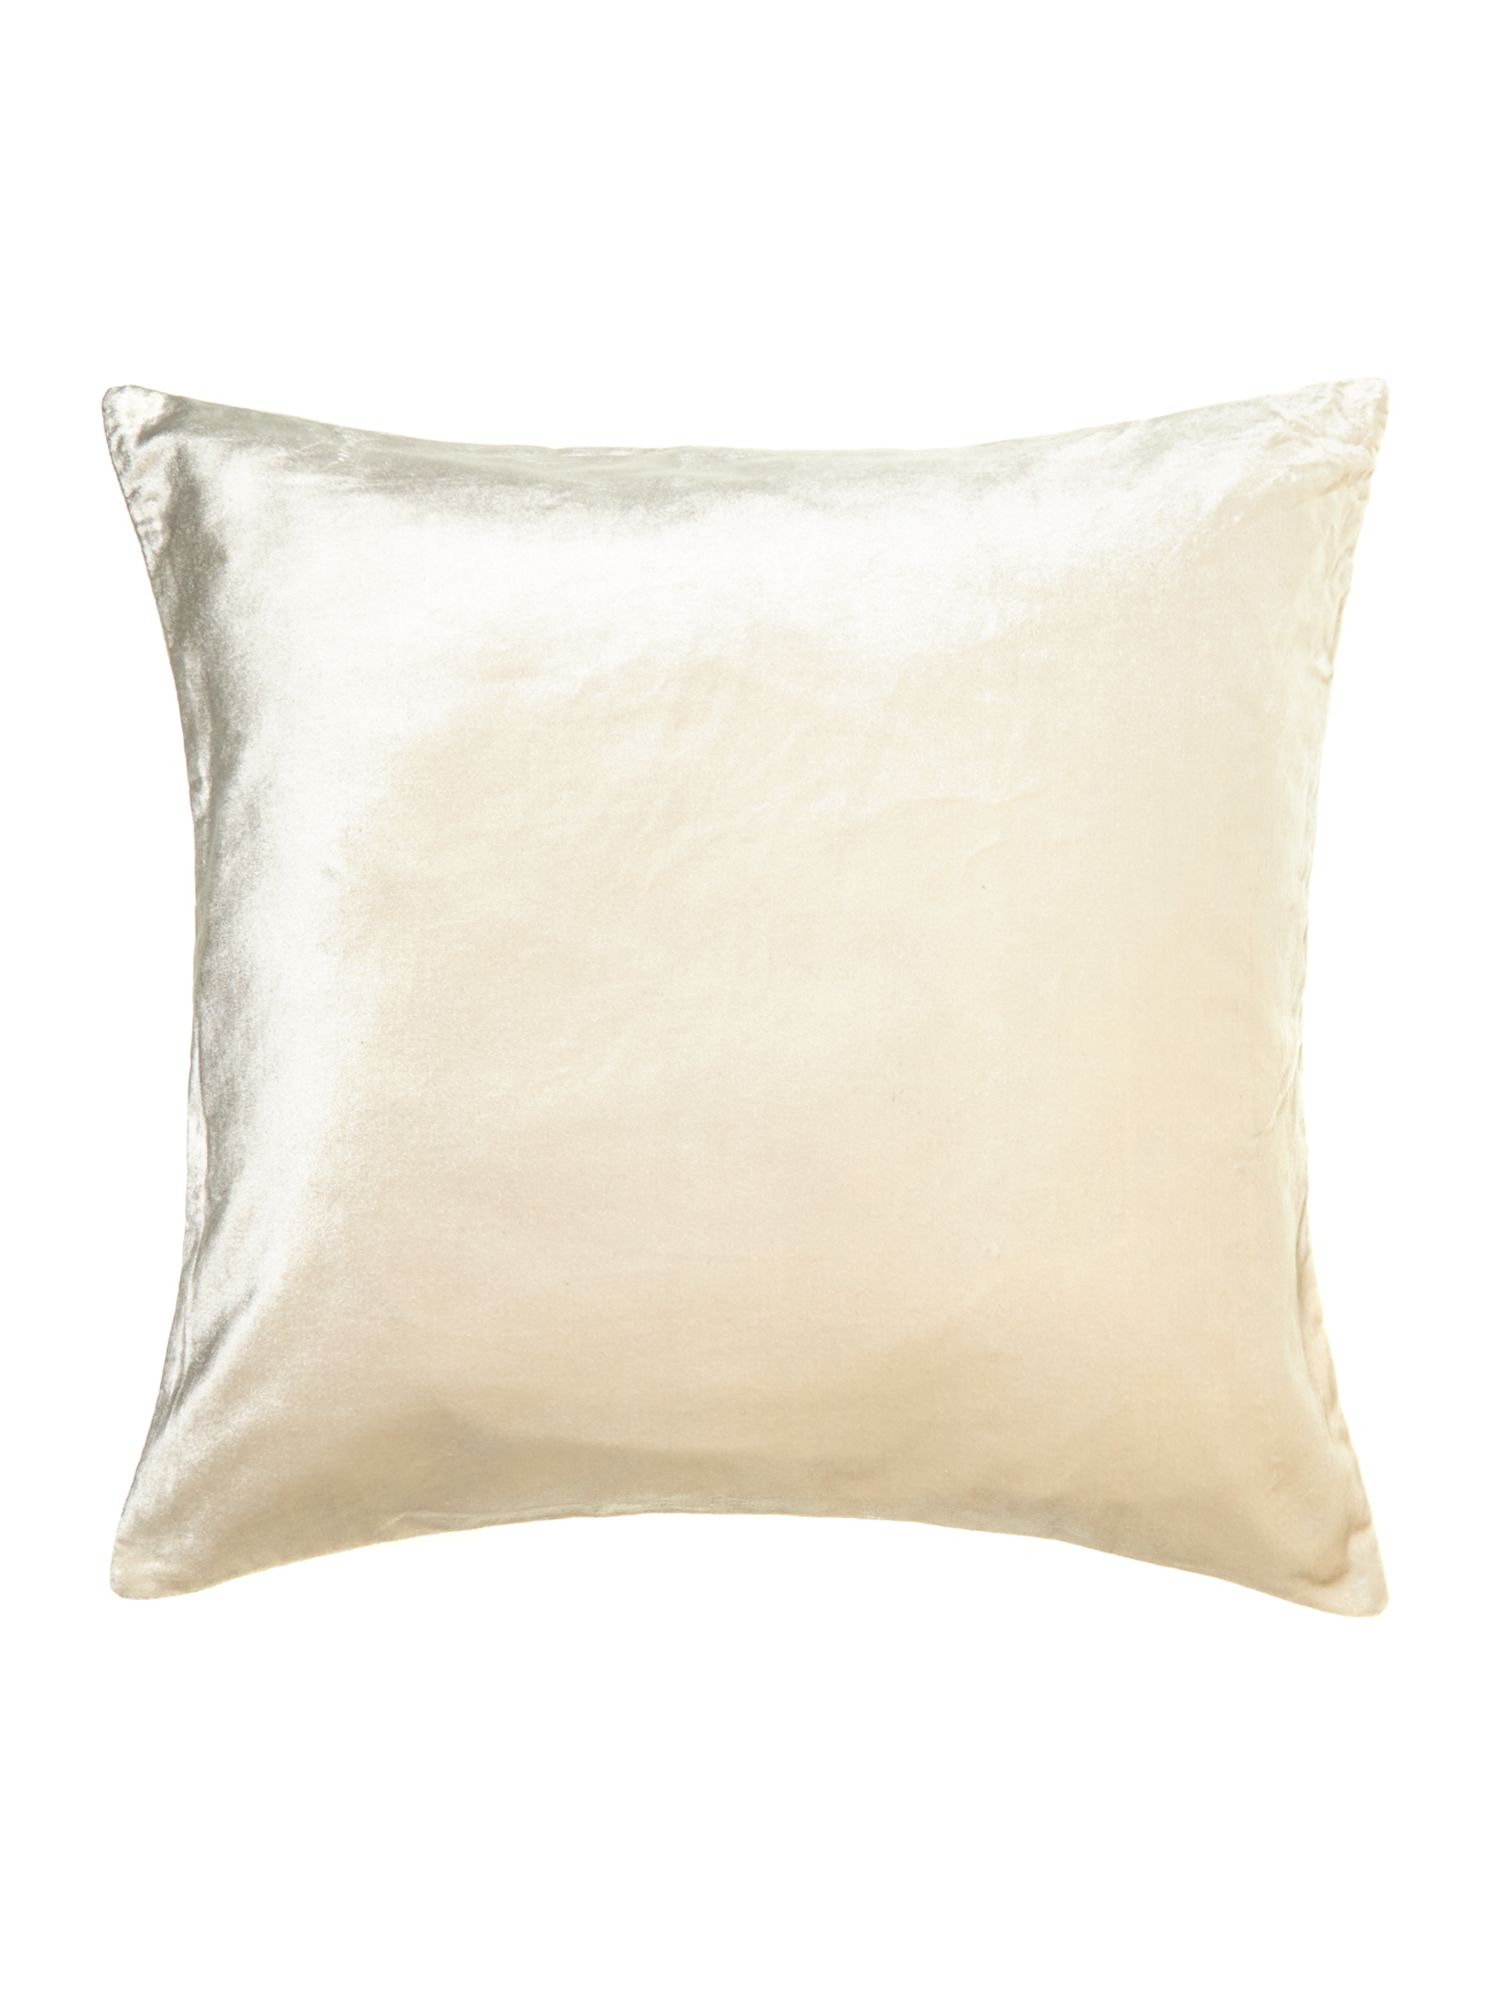 Oversized velvet cushion, champagne